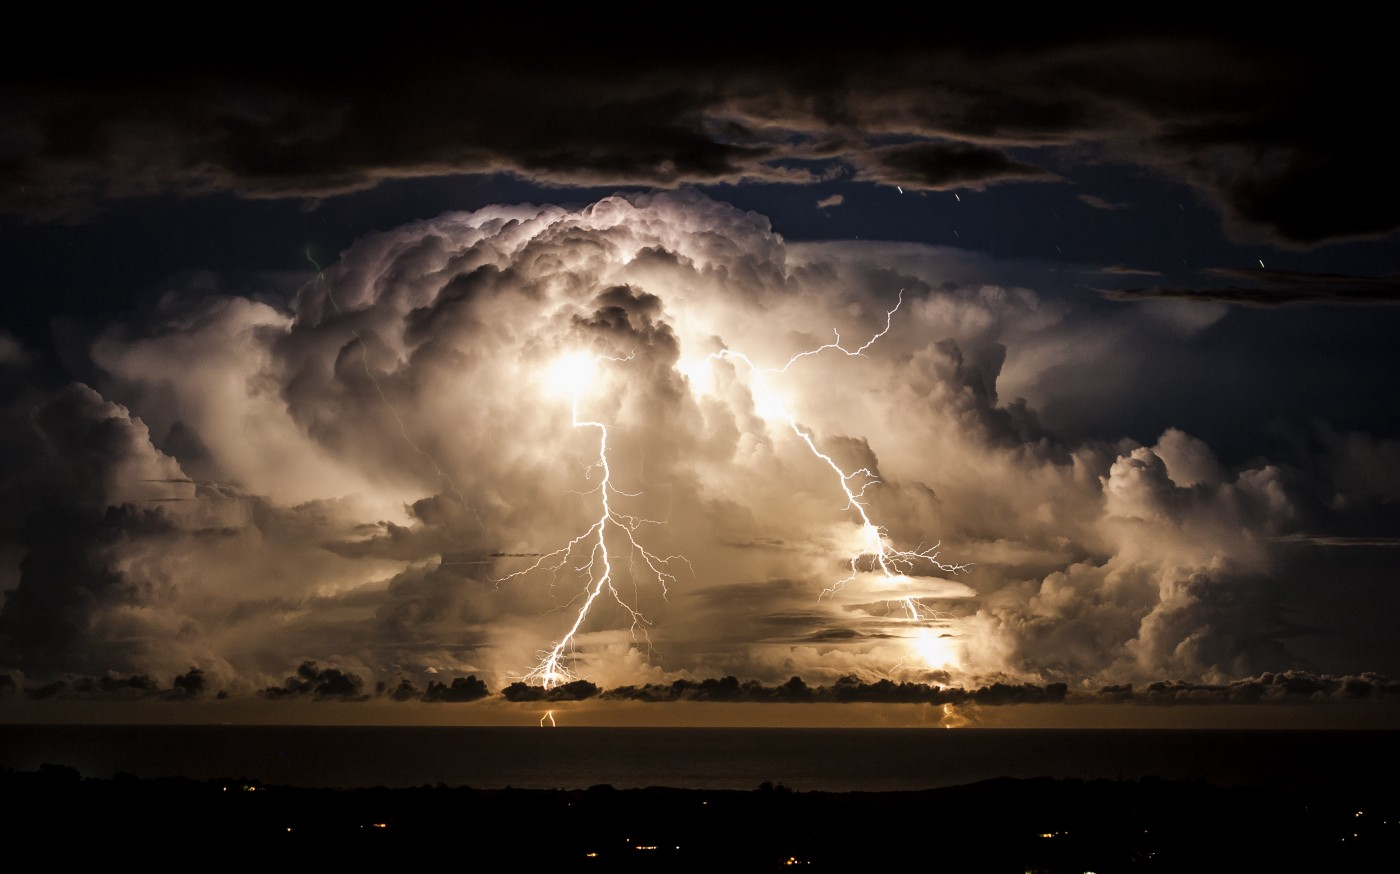 Storm clouds shroud an electrical storm of the coast of Byron Bay at night.